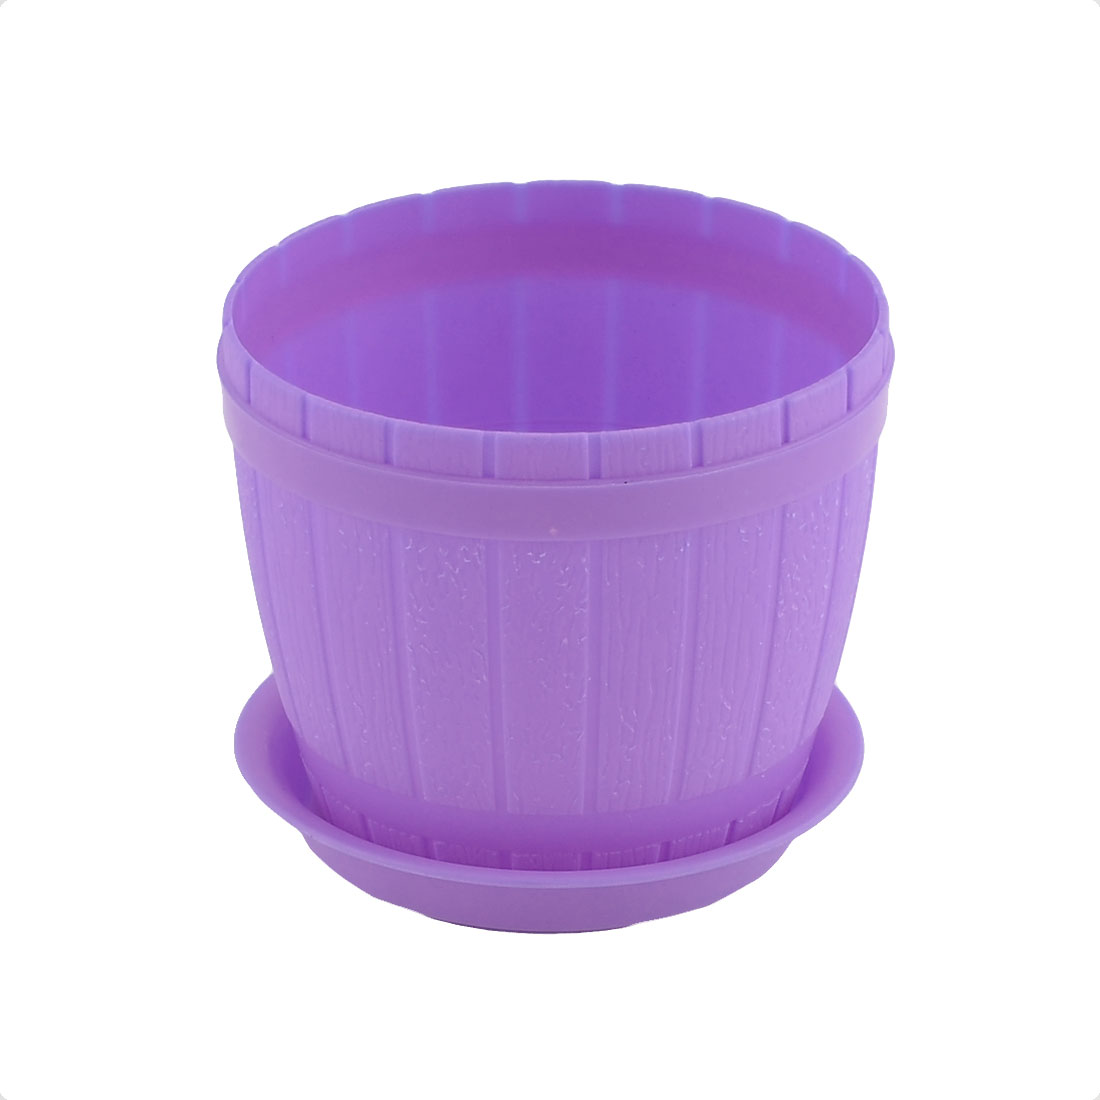 Home Garden Office Hotel Desk Plastic Plant Flower Pot Holder Purple w Tray